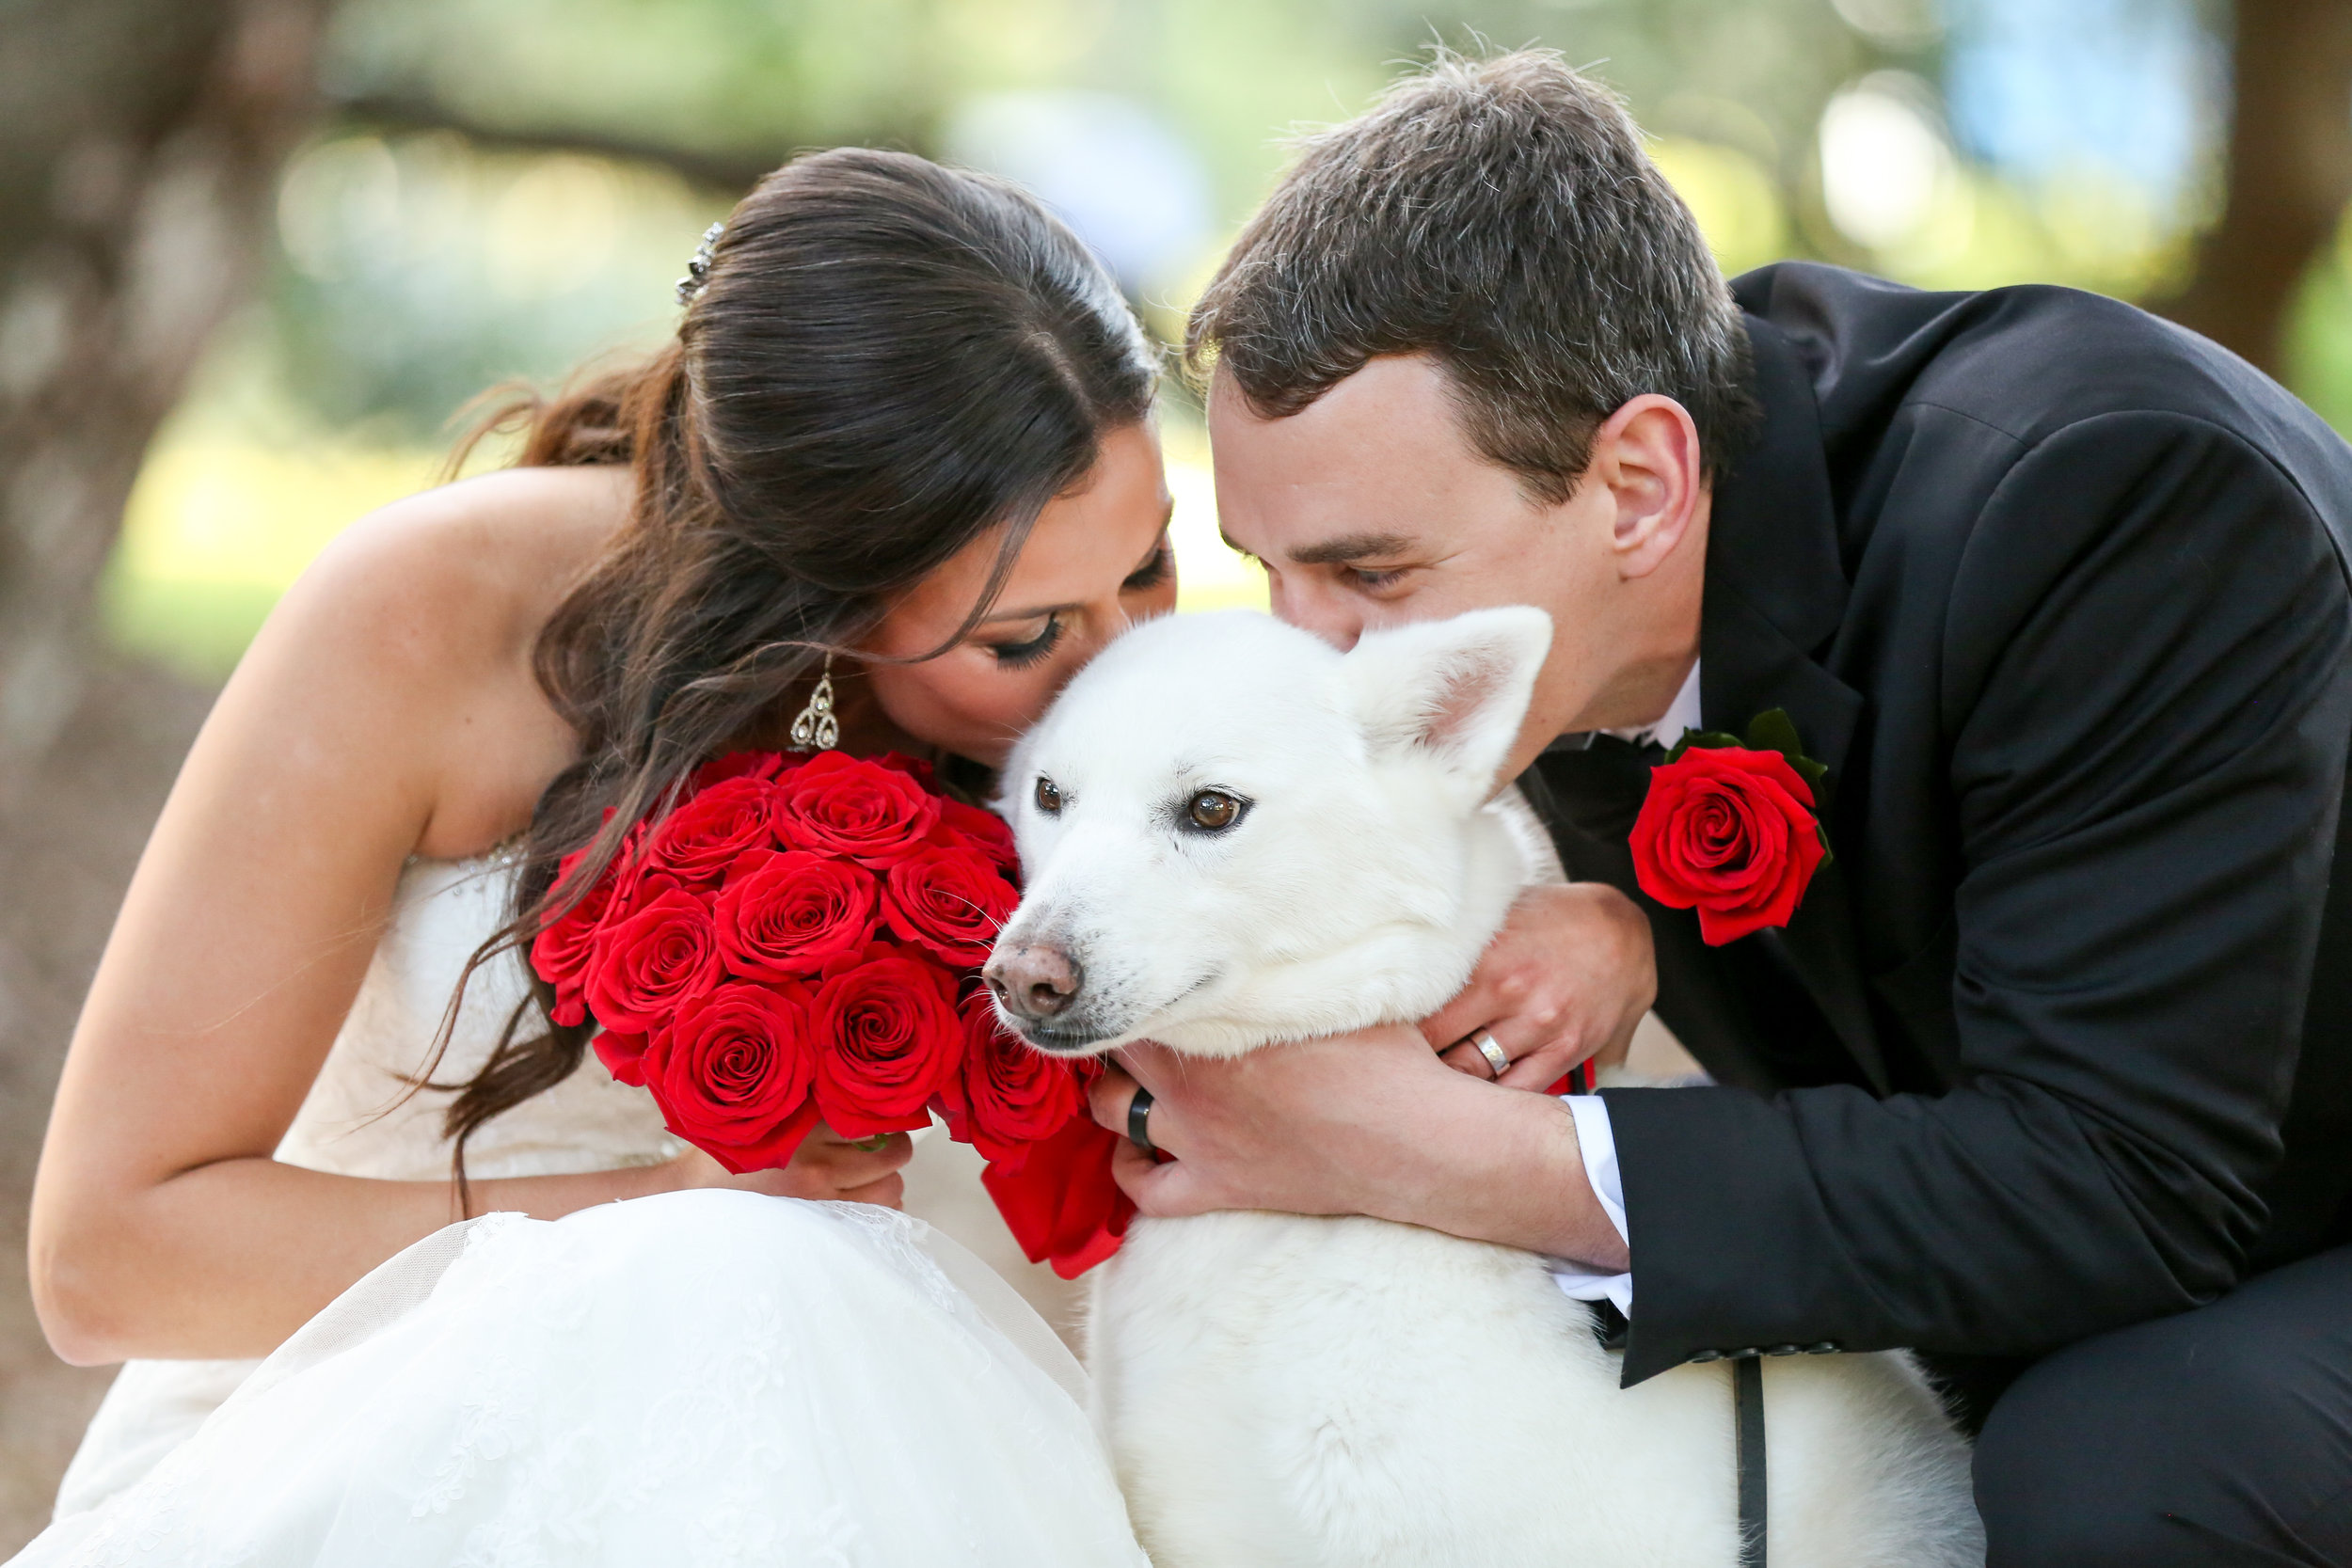 orlando-wedding-photography-videography-LiveHappyStudio.Com-dogs-puppy-roses-12.jpg